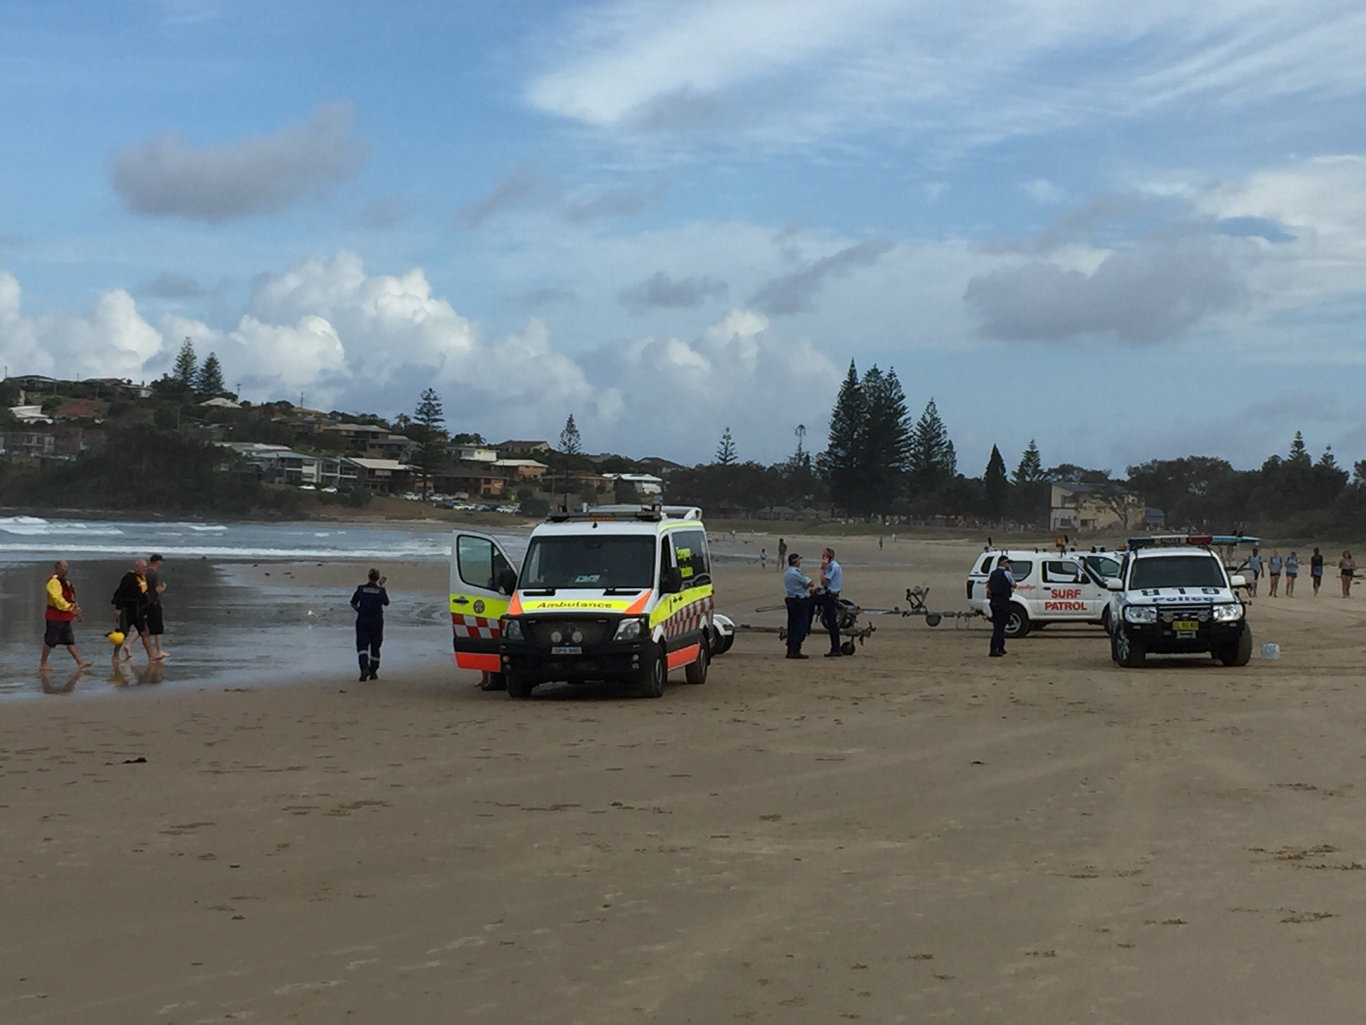 A 27-year-old man is missing in the surf on Woolgoolga Beach, after a 21-year-old woman was rescued this afternoon.